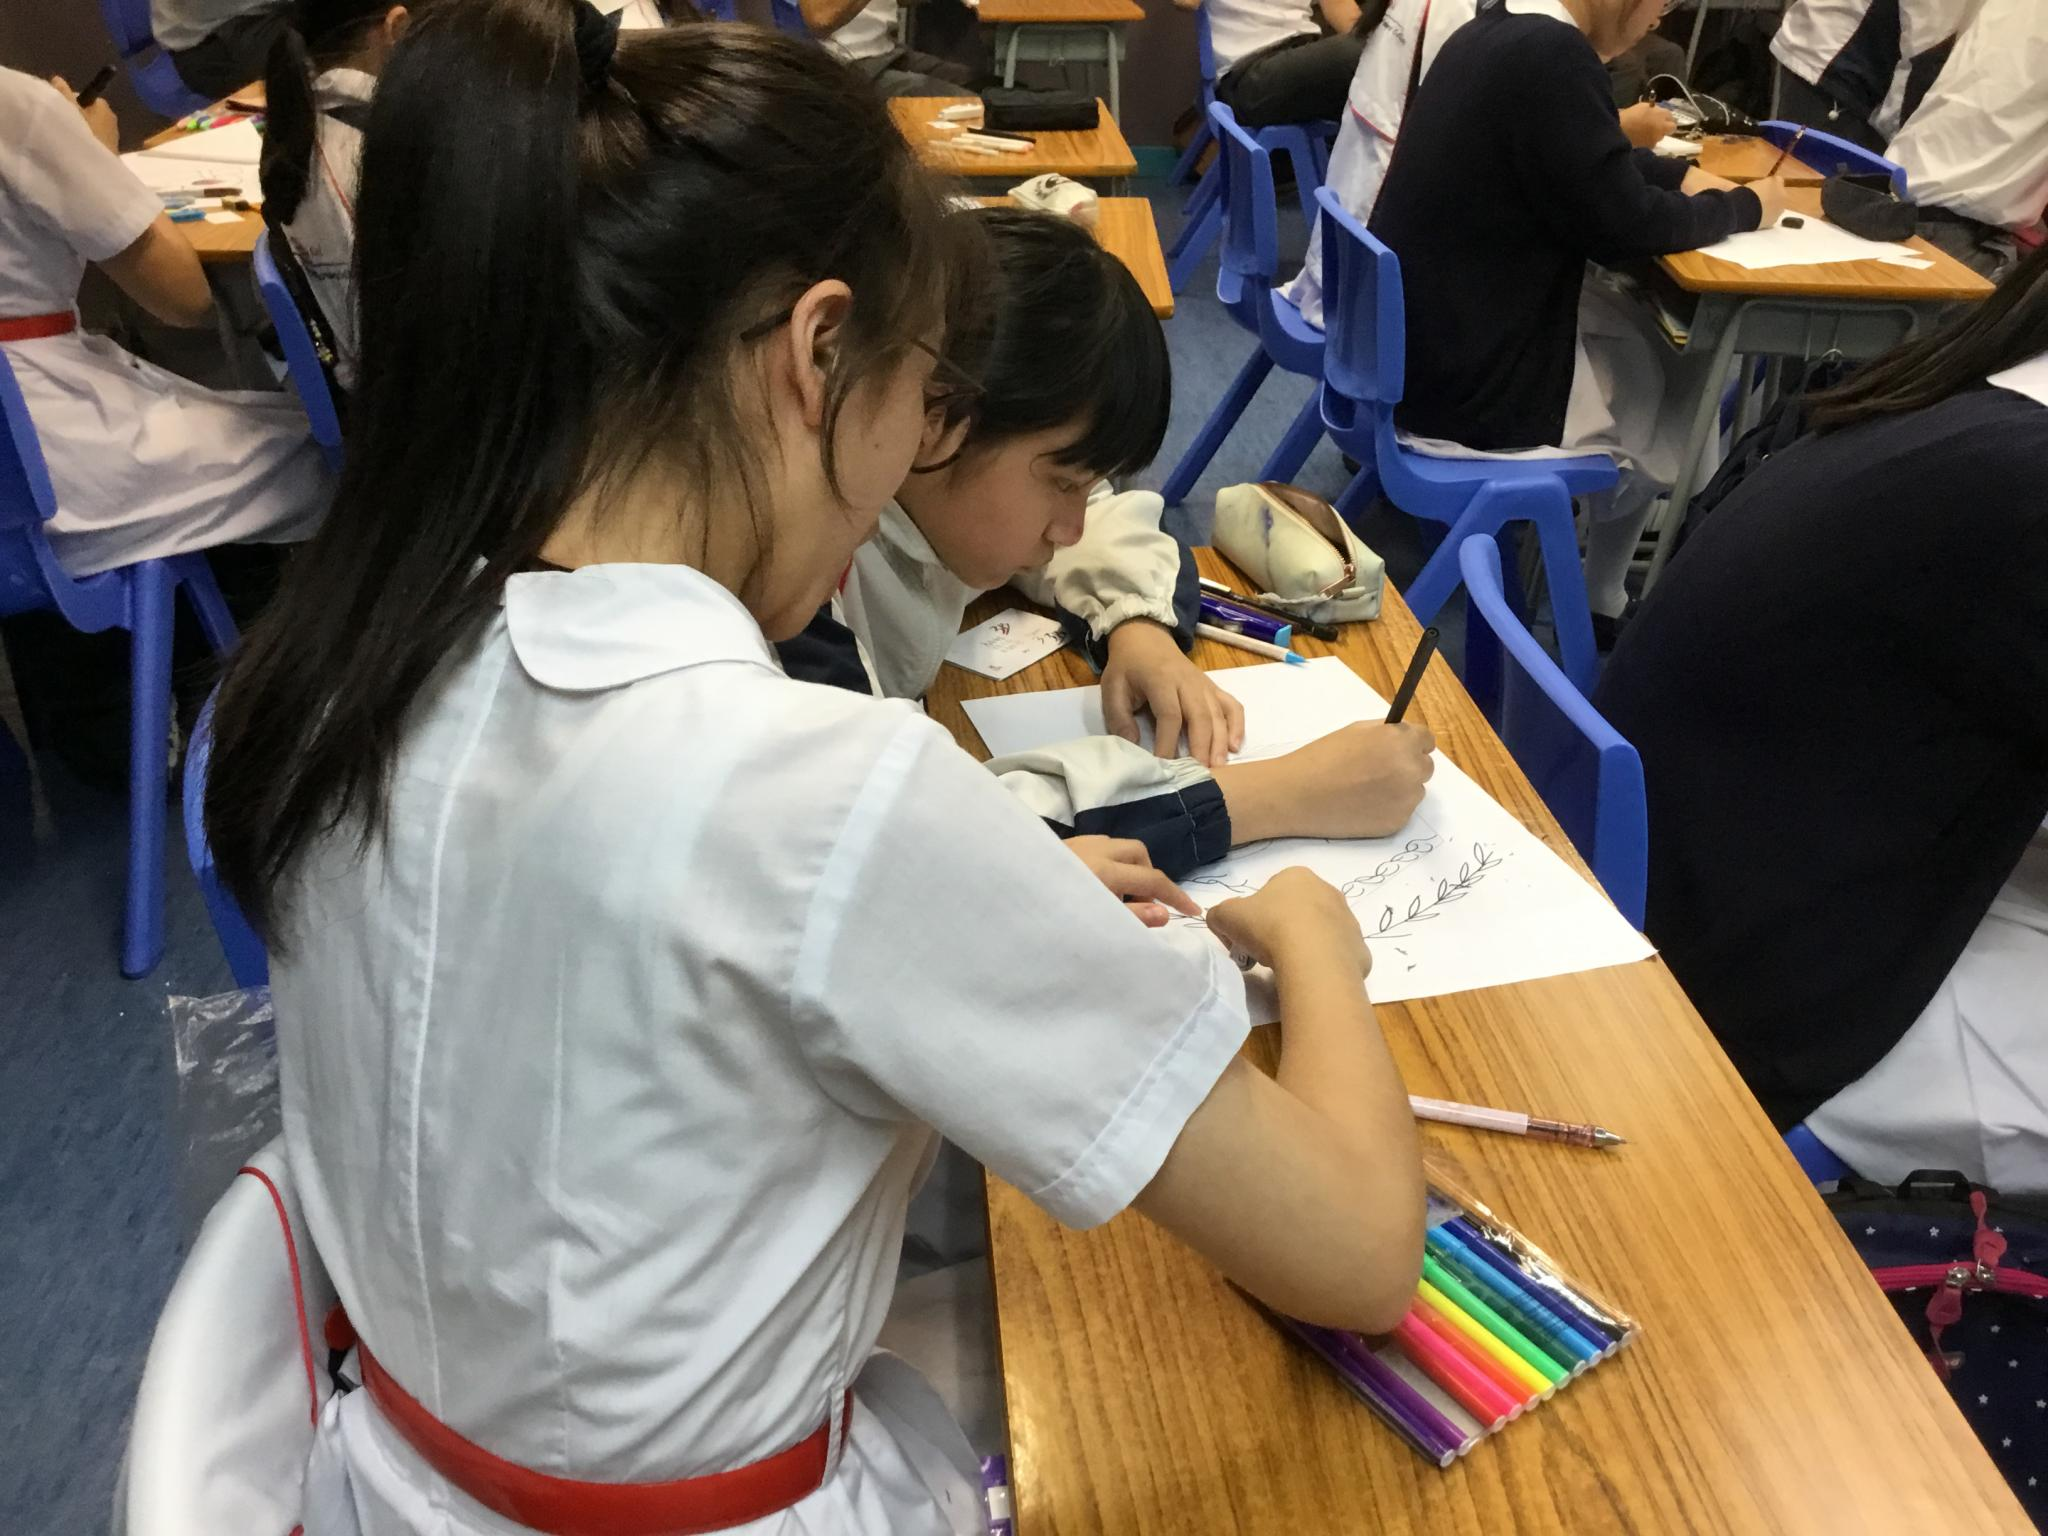 Students were working on the design of the class logo.